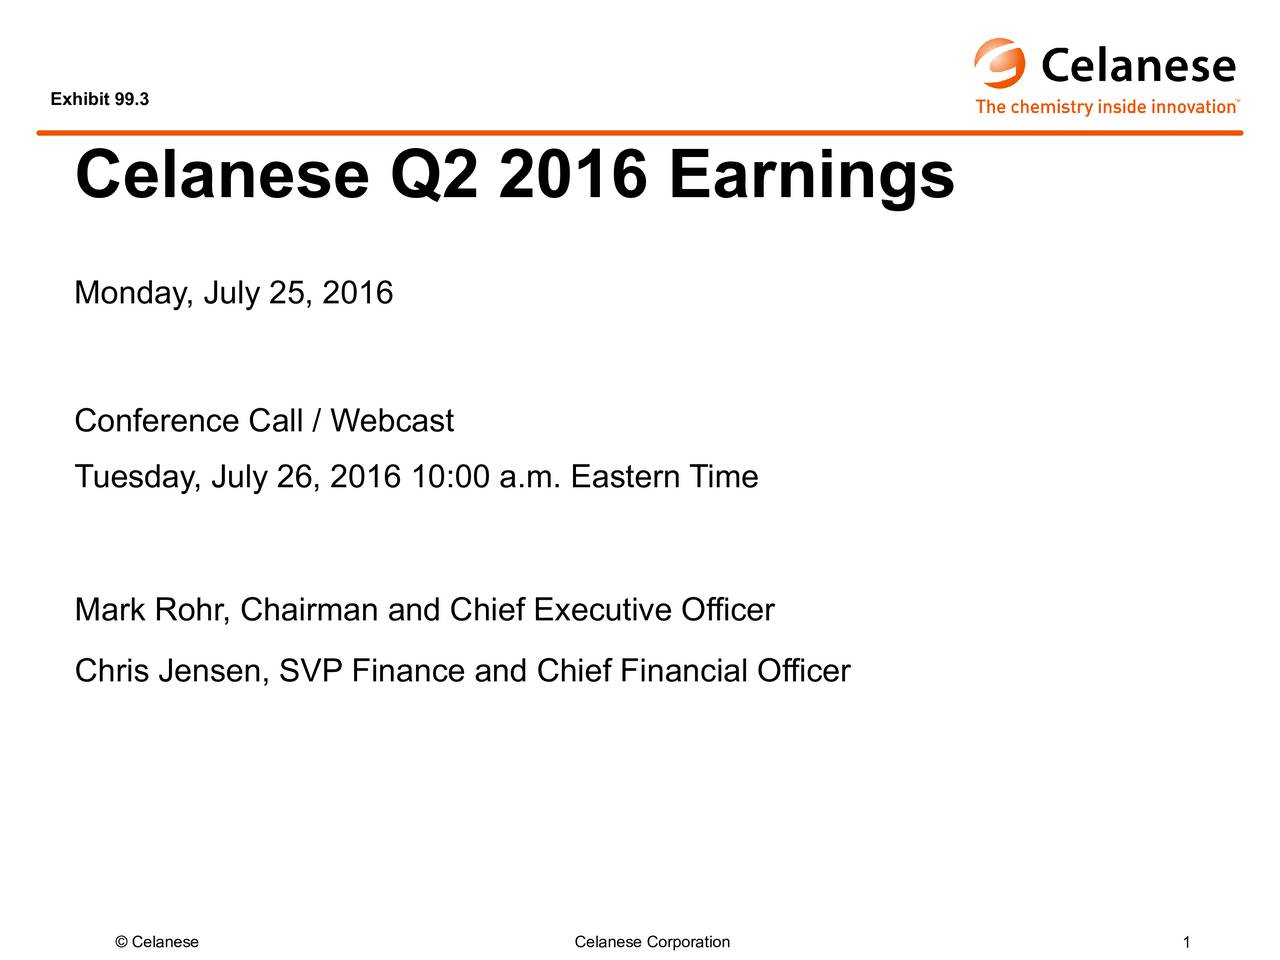 Celanese Q2 2016 Earnings Monday, July25, 2016 Conference Call / Webcast Tuesday, July26, 2016 10:00 a.m. Eastern Time Mark Rohr, Chairman and Chief Executive Officer Chris Jensen, SVP Finance and Chief Financial Officer